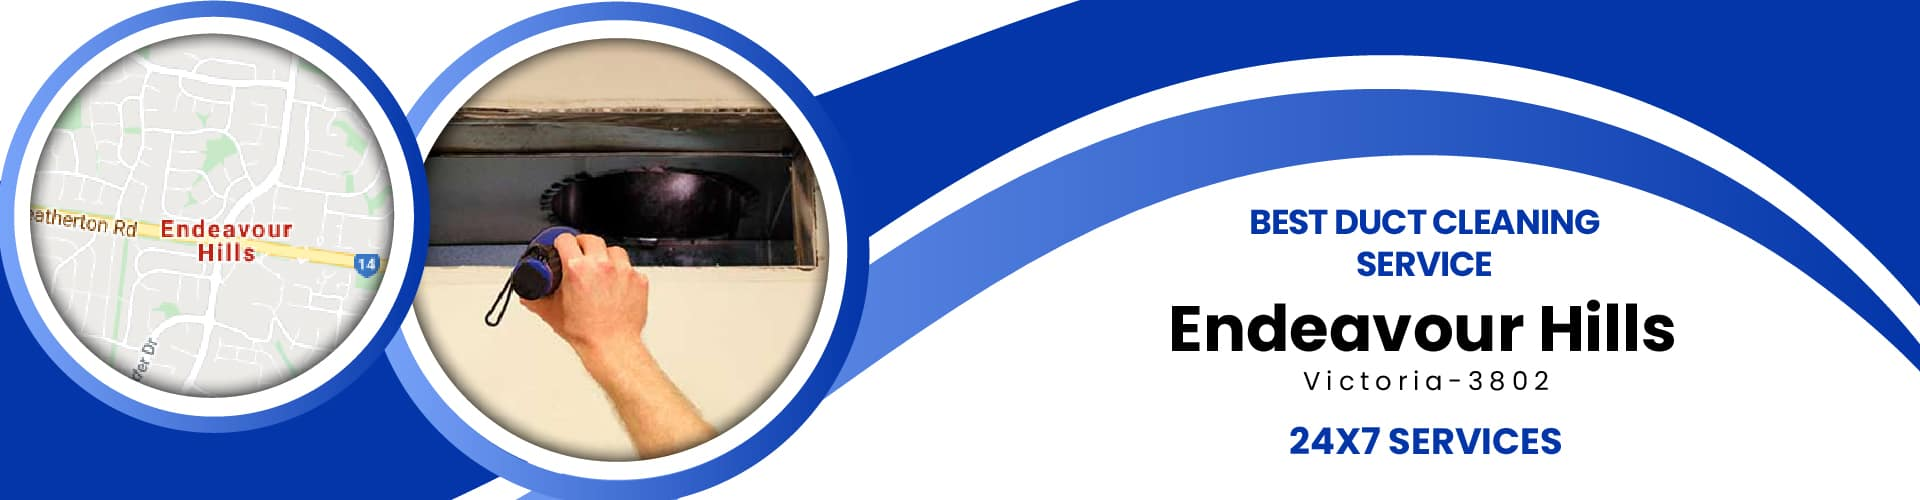 Duct Cleaning Endeavour Hills